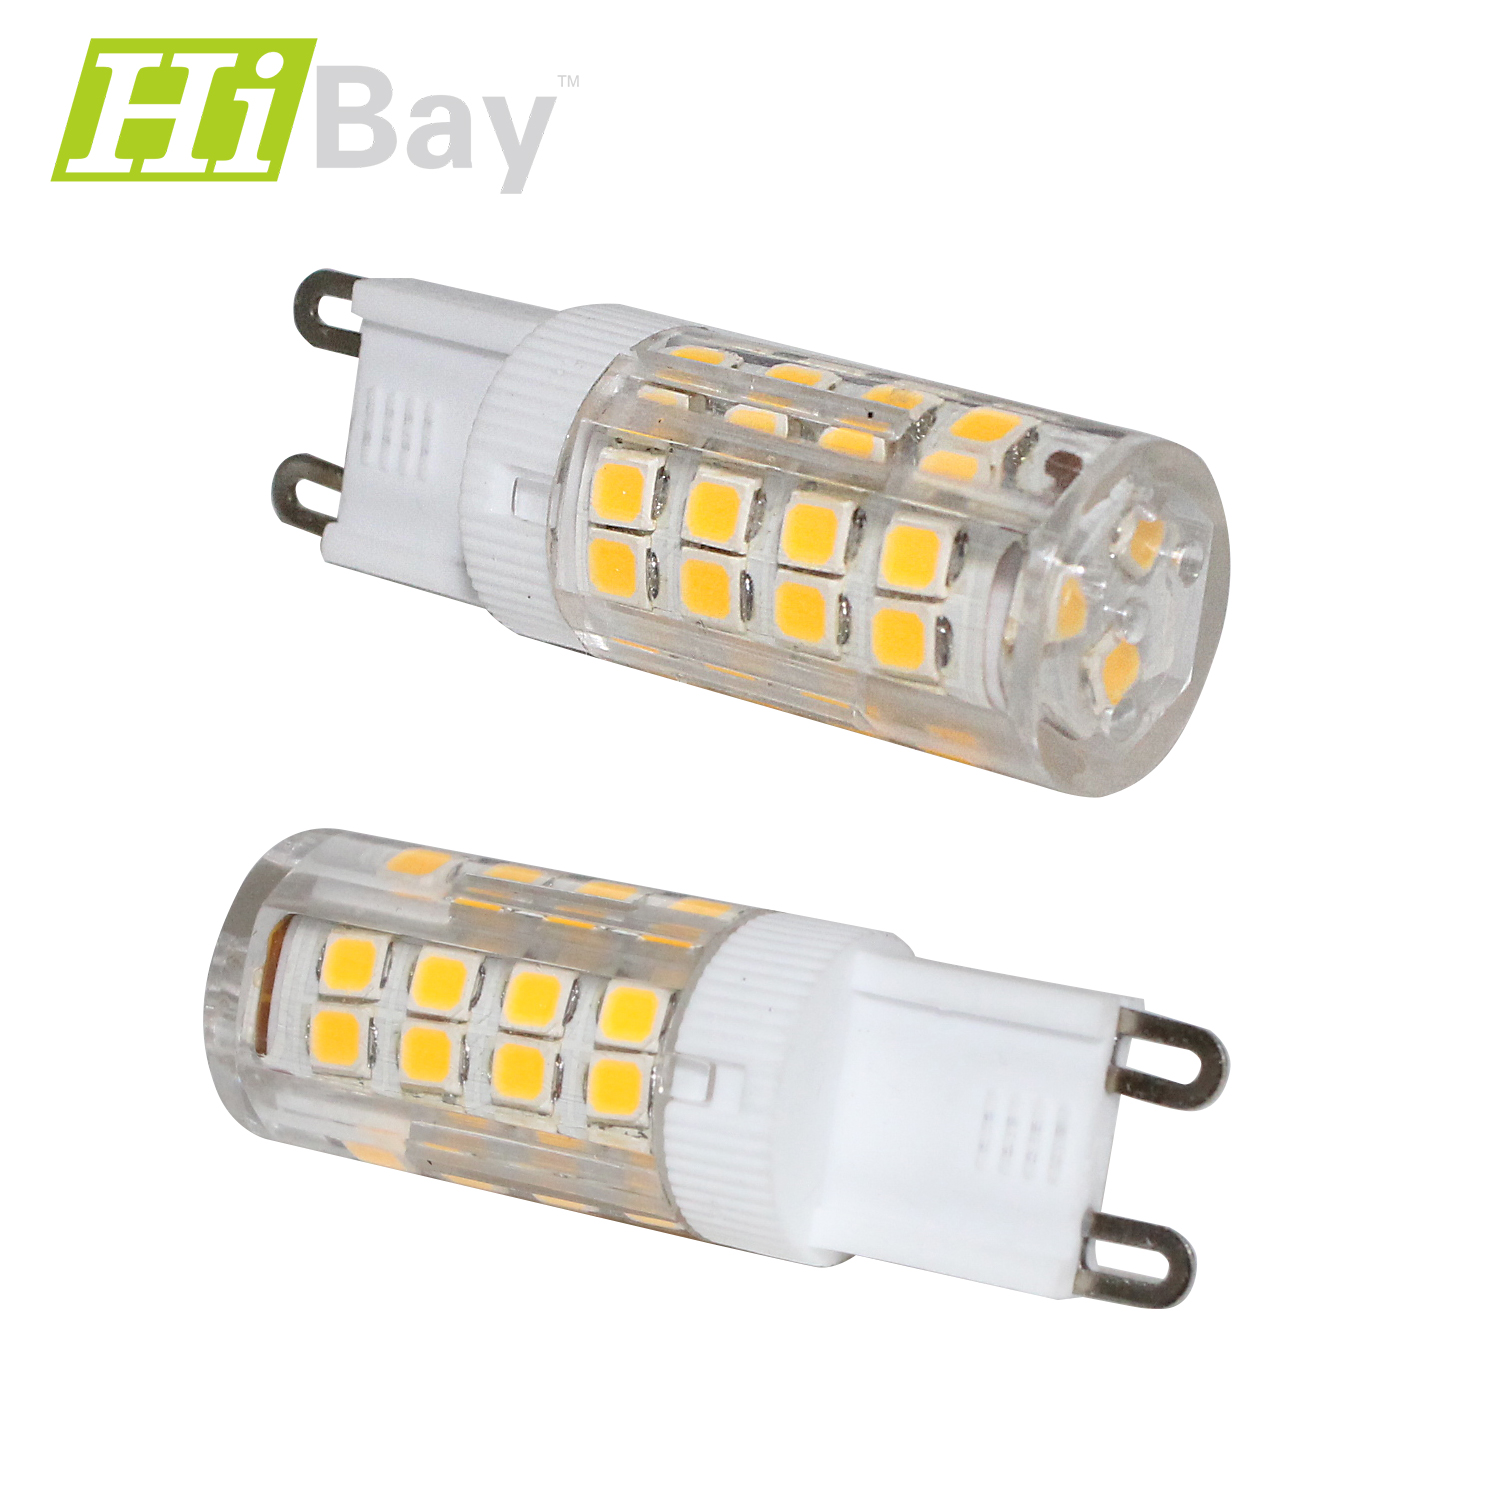 ceramic g9 5w led bulb 51smd 2835 capsule replace halogen. Black Bedroom Furniture Sets. Home Design Ideas